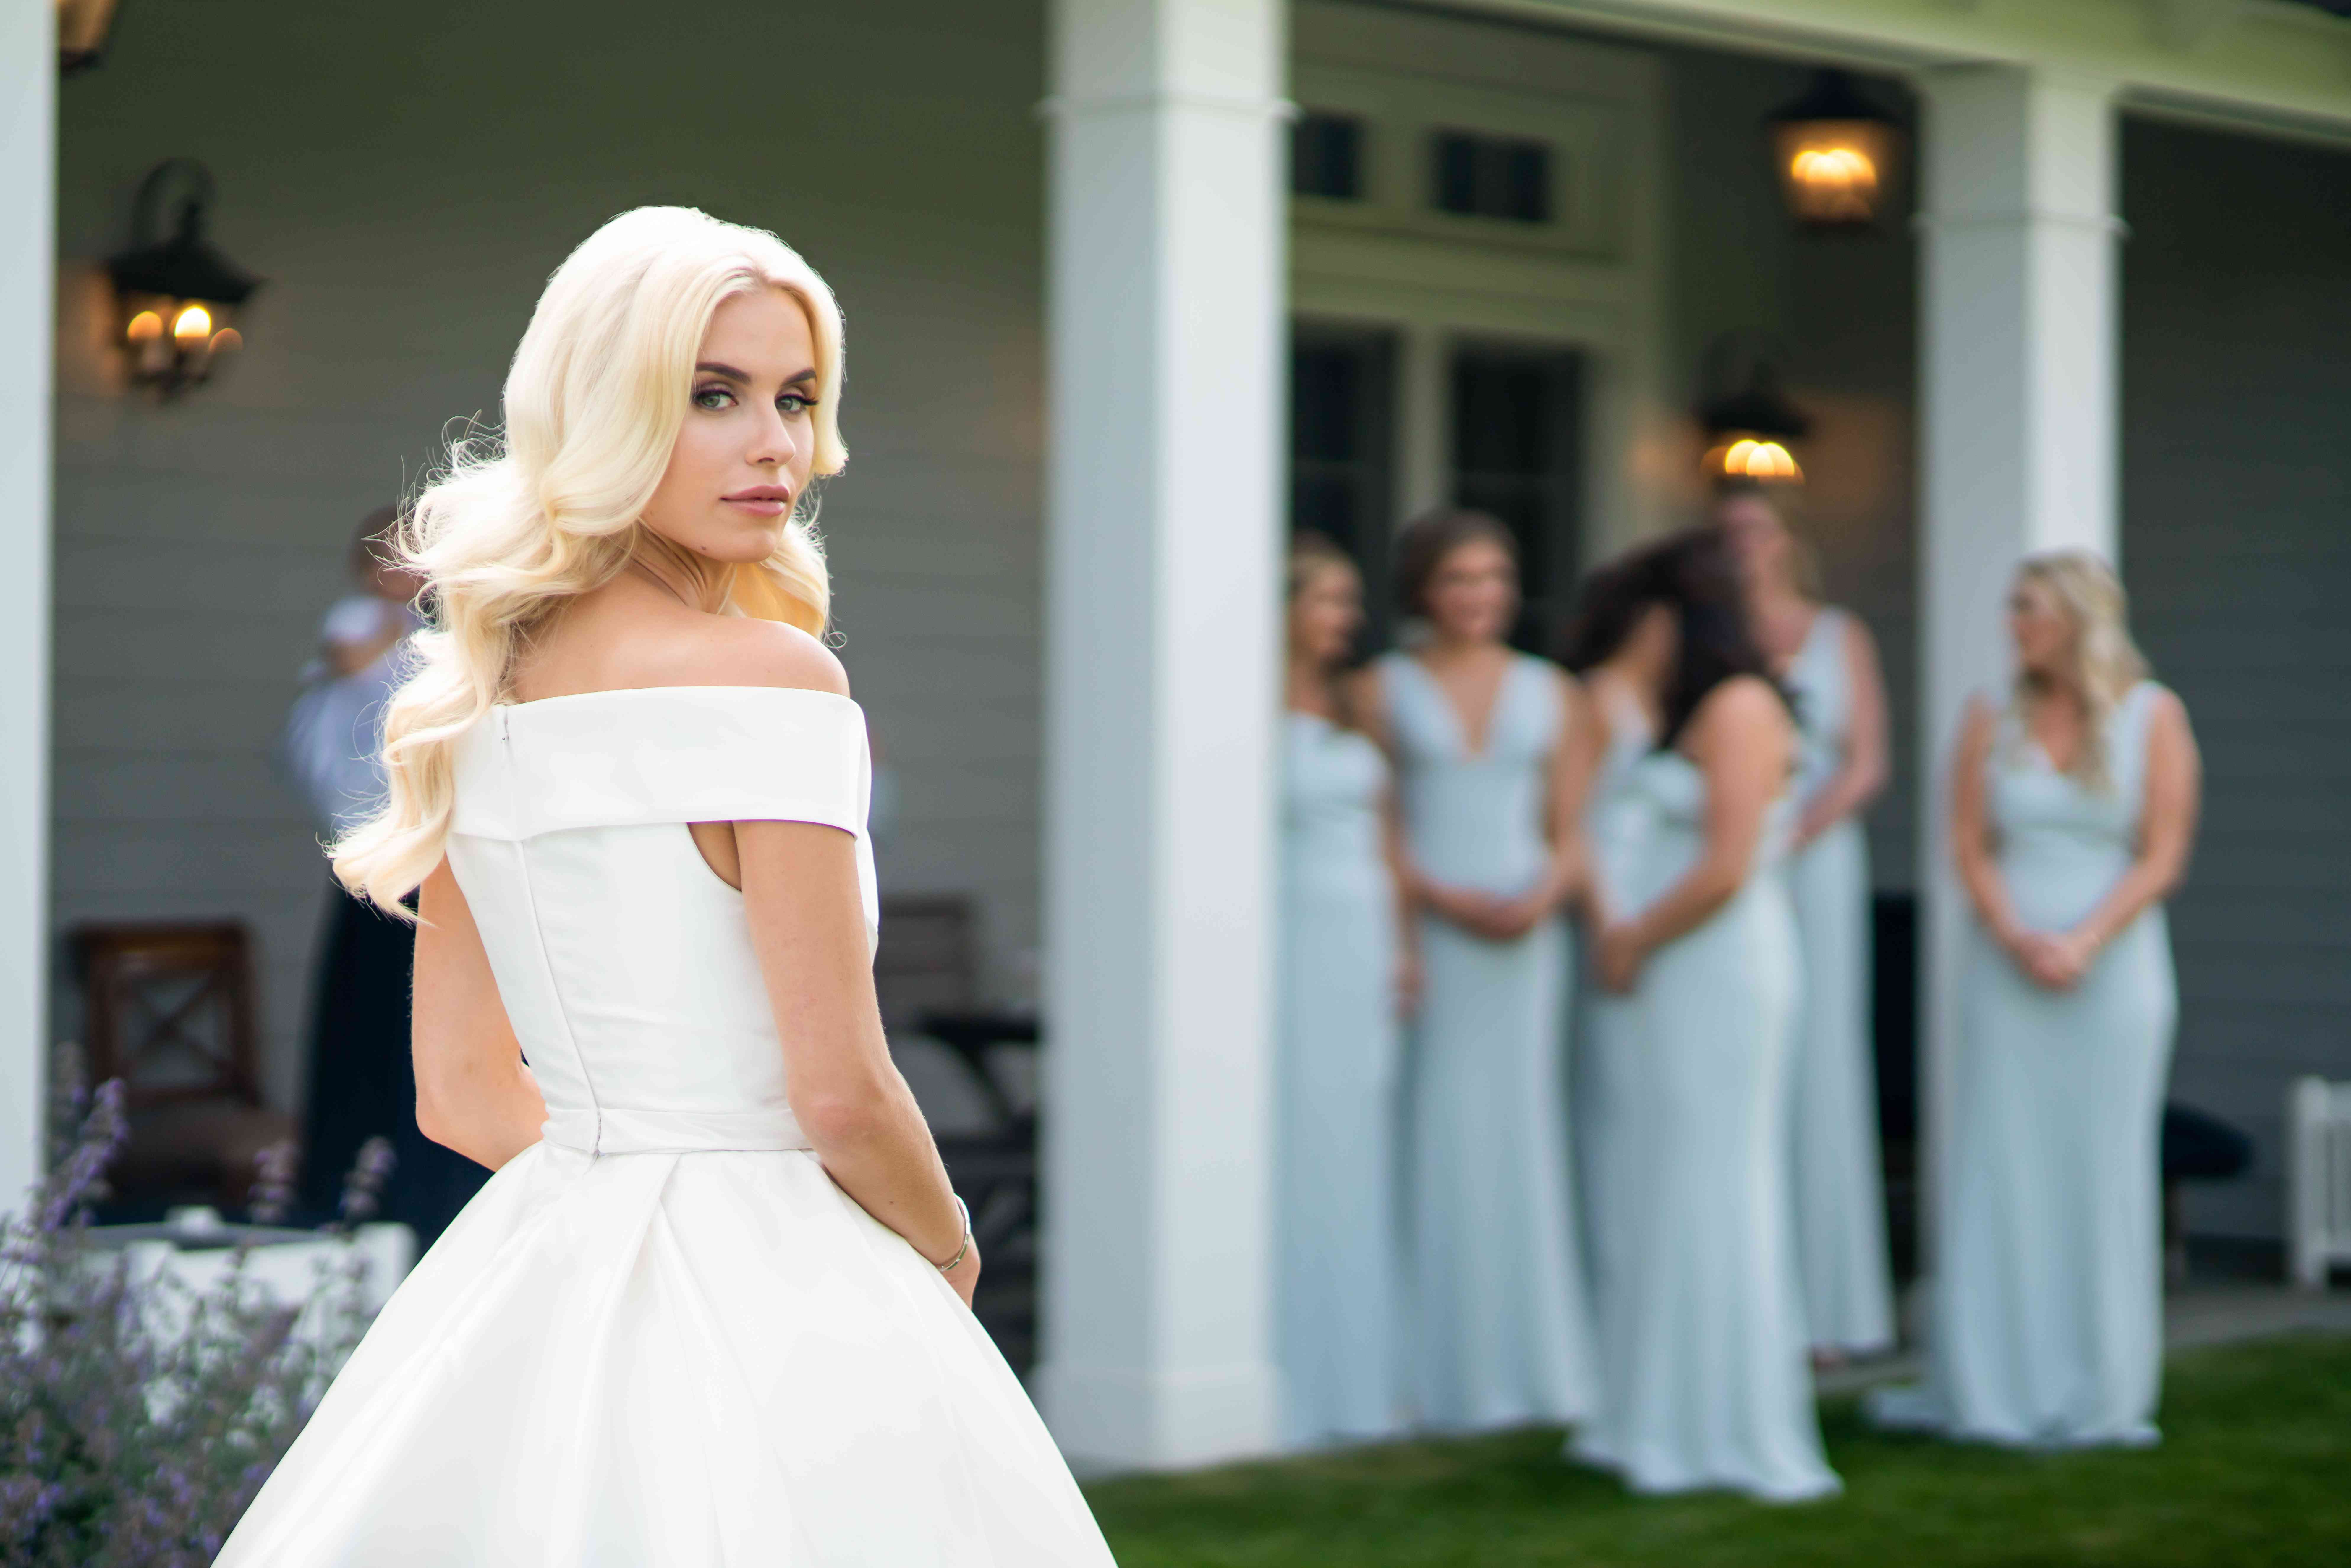 Bridal portrait with bridesmaids in the background